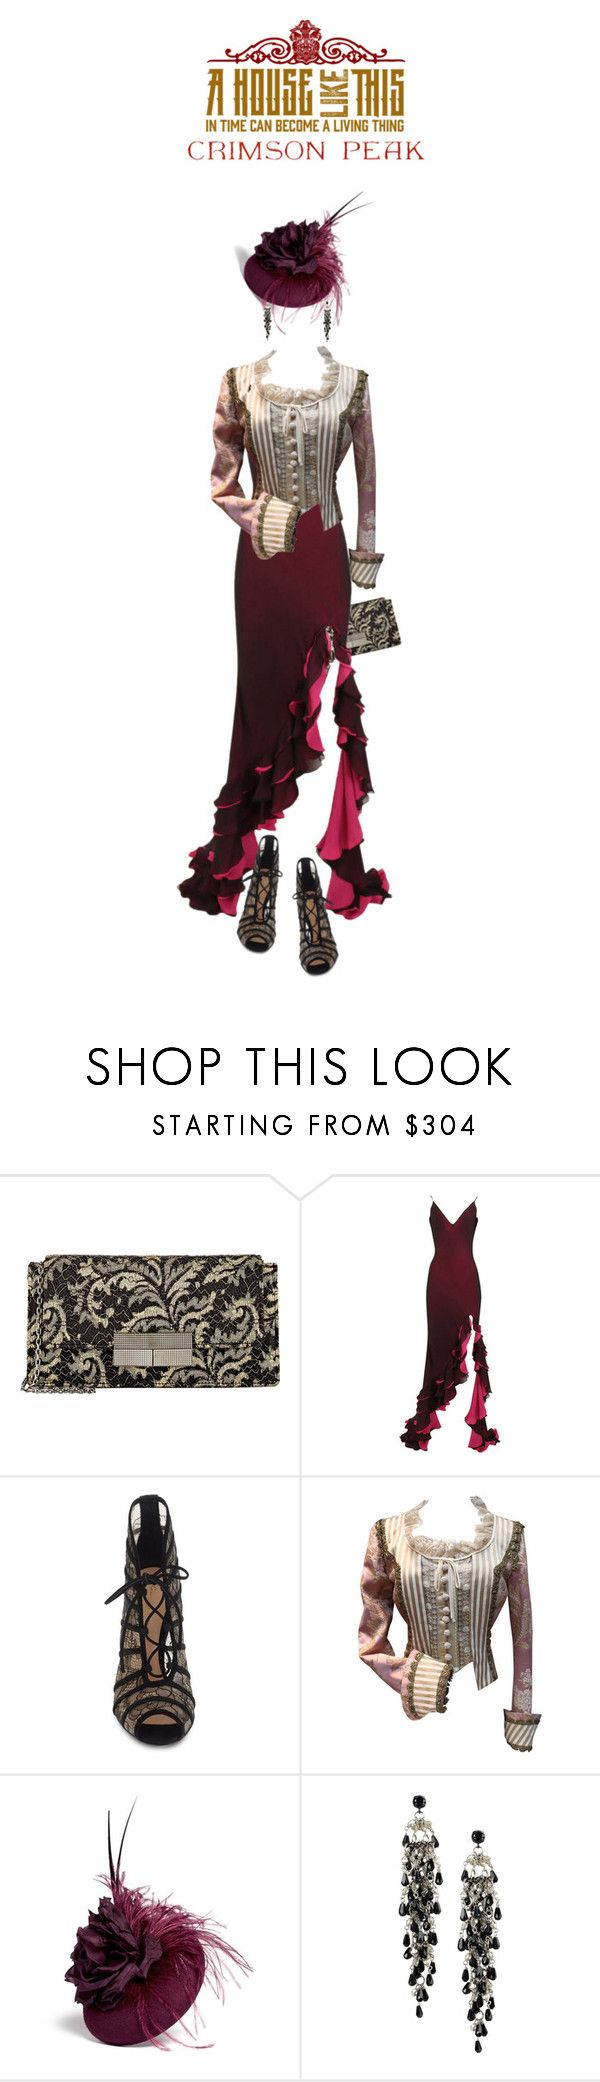 """Indulge Your Dark Side with Crimson Peak : Contest Entry"" by zayngirl1dlove ❤ liked on Polyvore featuring J. Mendel, Maria Grachvogel, Gianvito Rossi, Moschino, Piers Atkinson, First People First and vintage"